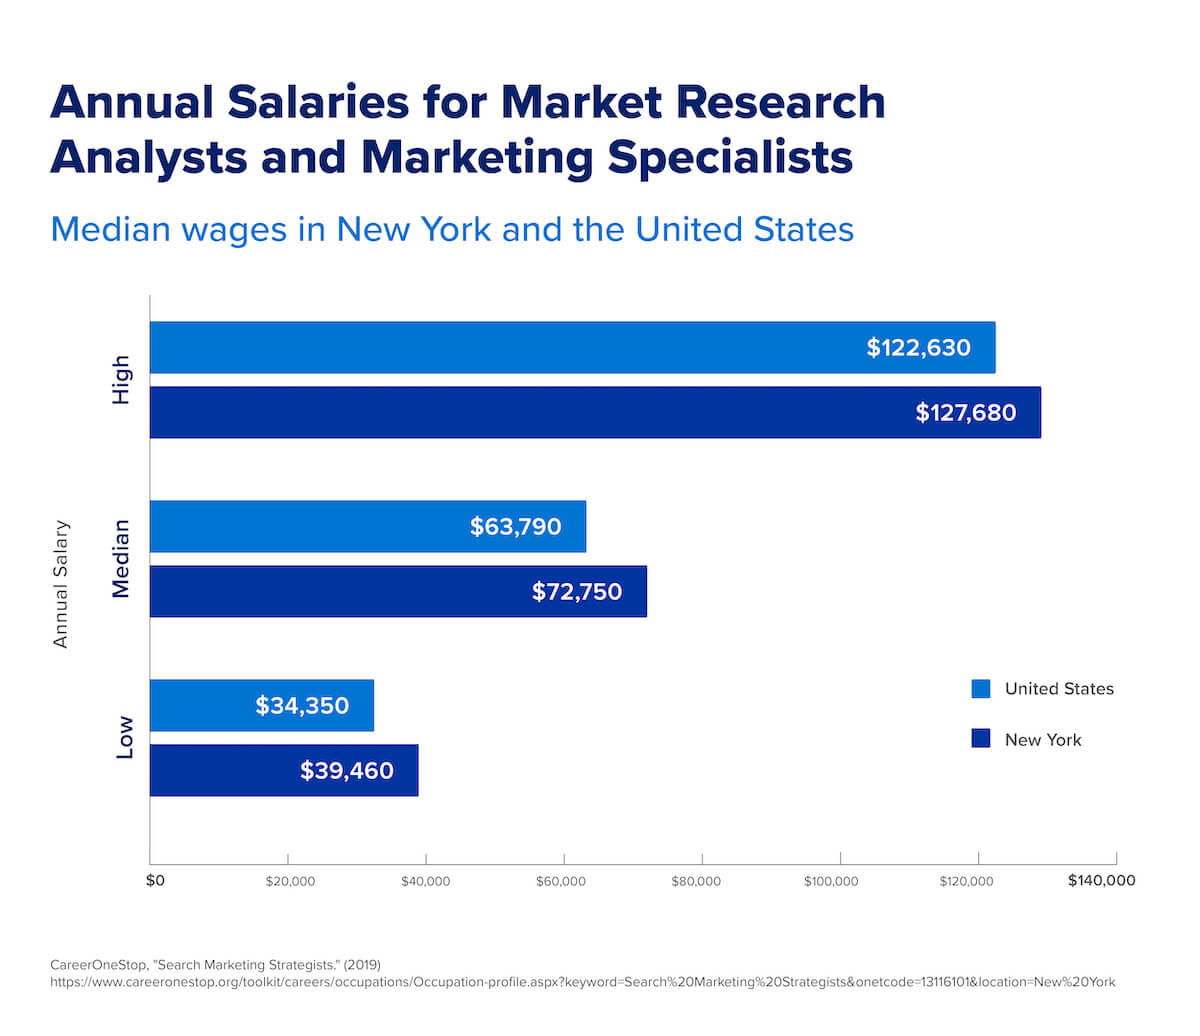 A chart that shows the median salaries for market research analysts and marketing specialists in both New York and the United States.